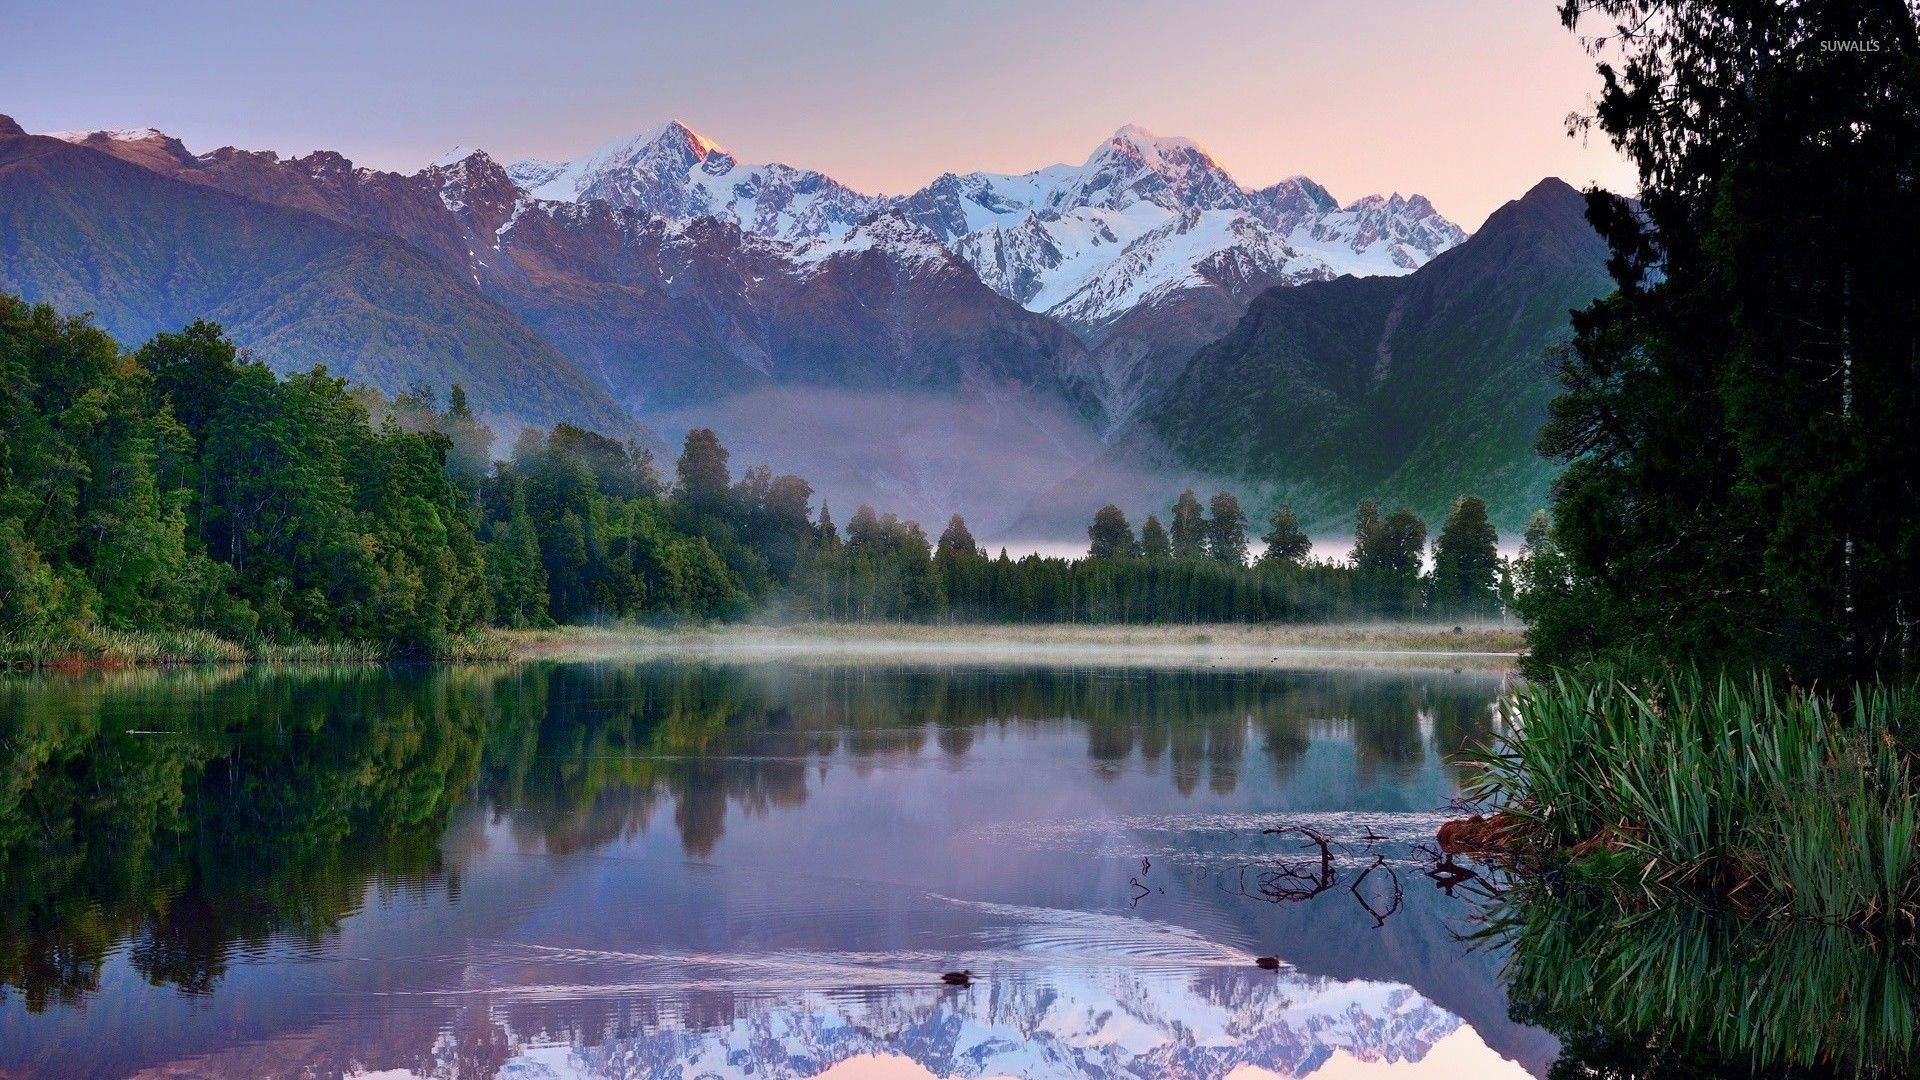 New Zealand Mountains Mountain Lake In New Zealand Wallpaper Nature Wallpapers In 2020 New Zealand Lakes Lake New Zealand Landscape